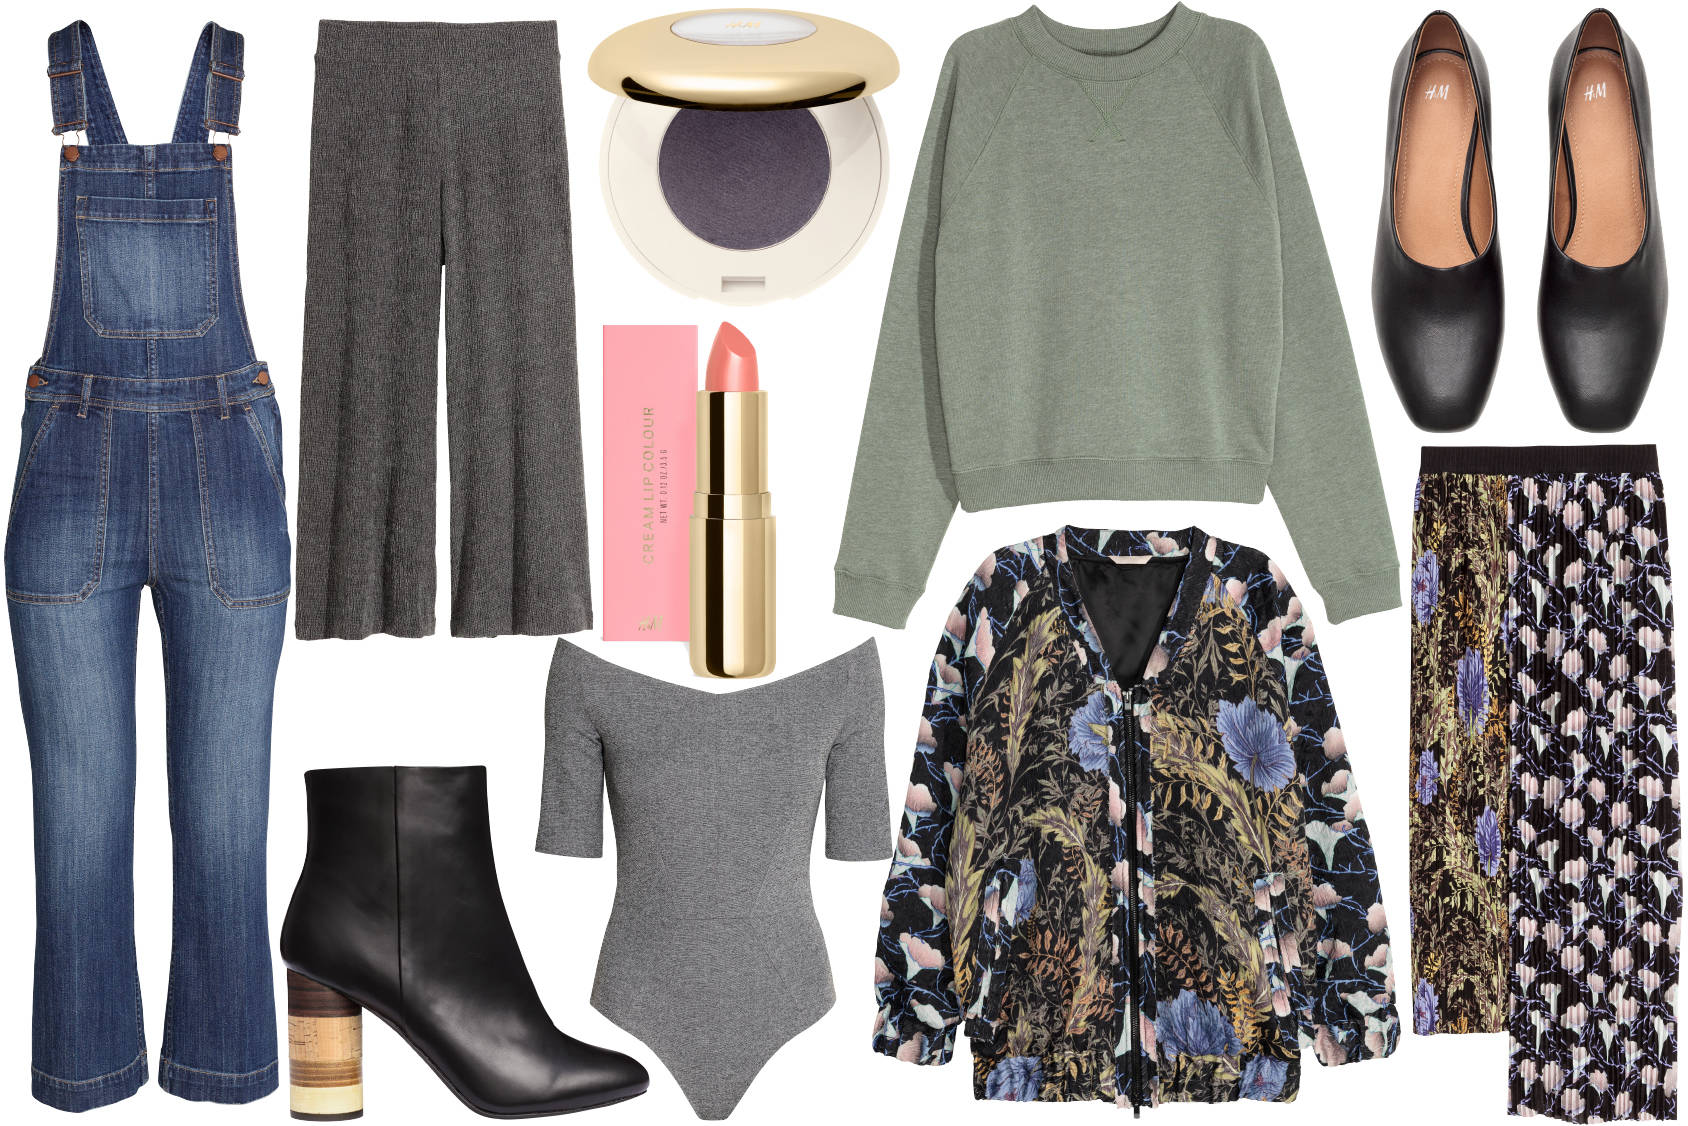 THIS WEEK'S FASHION FINDS, w.8